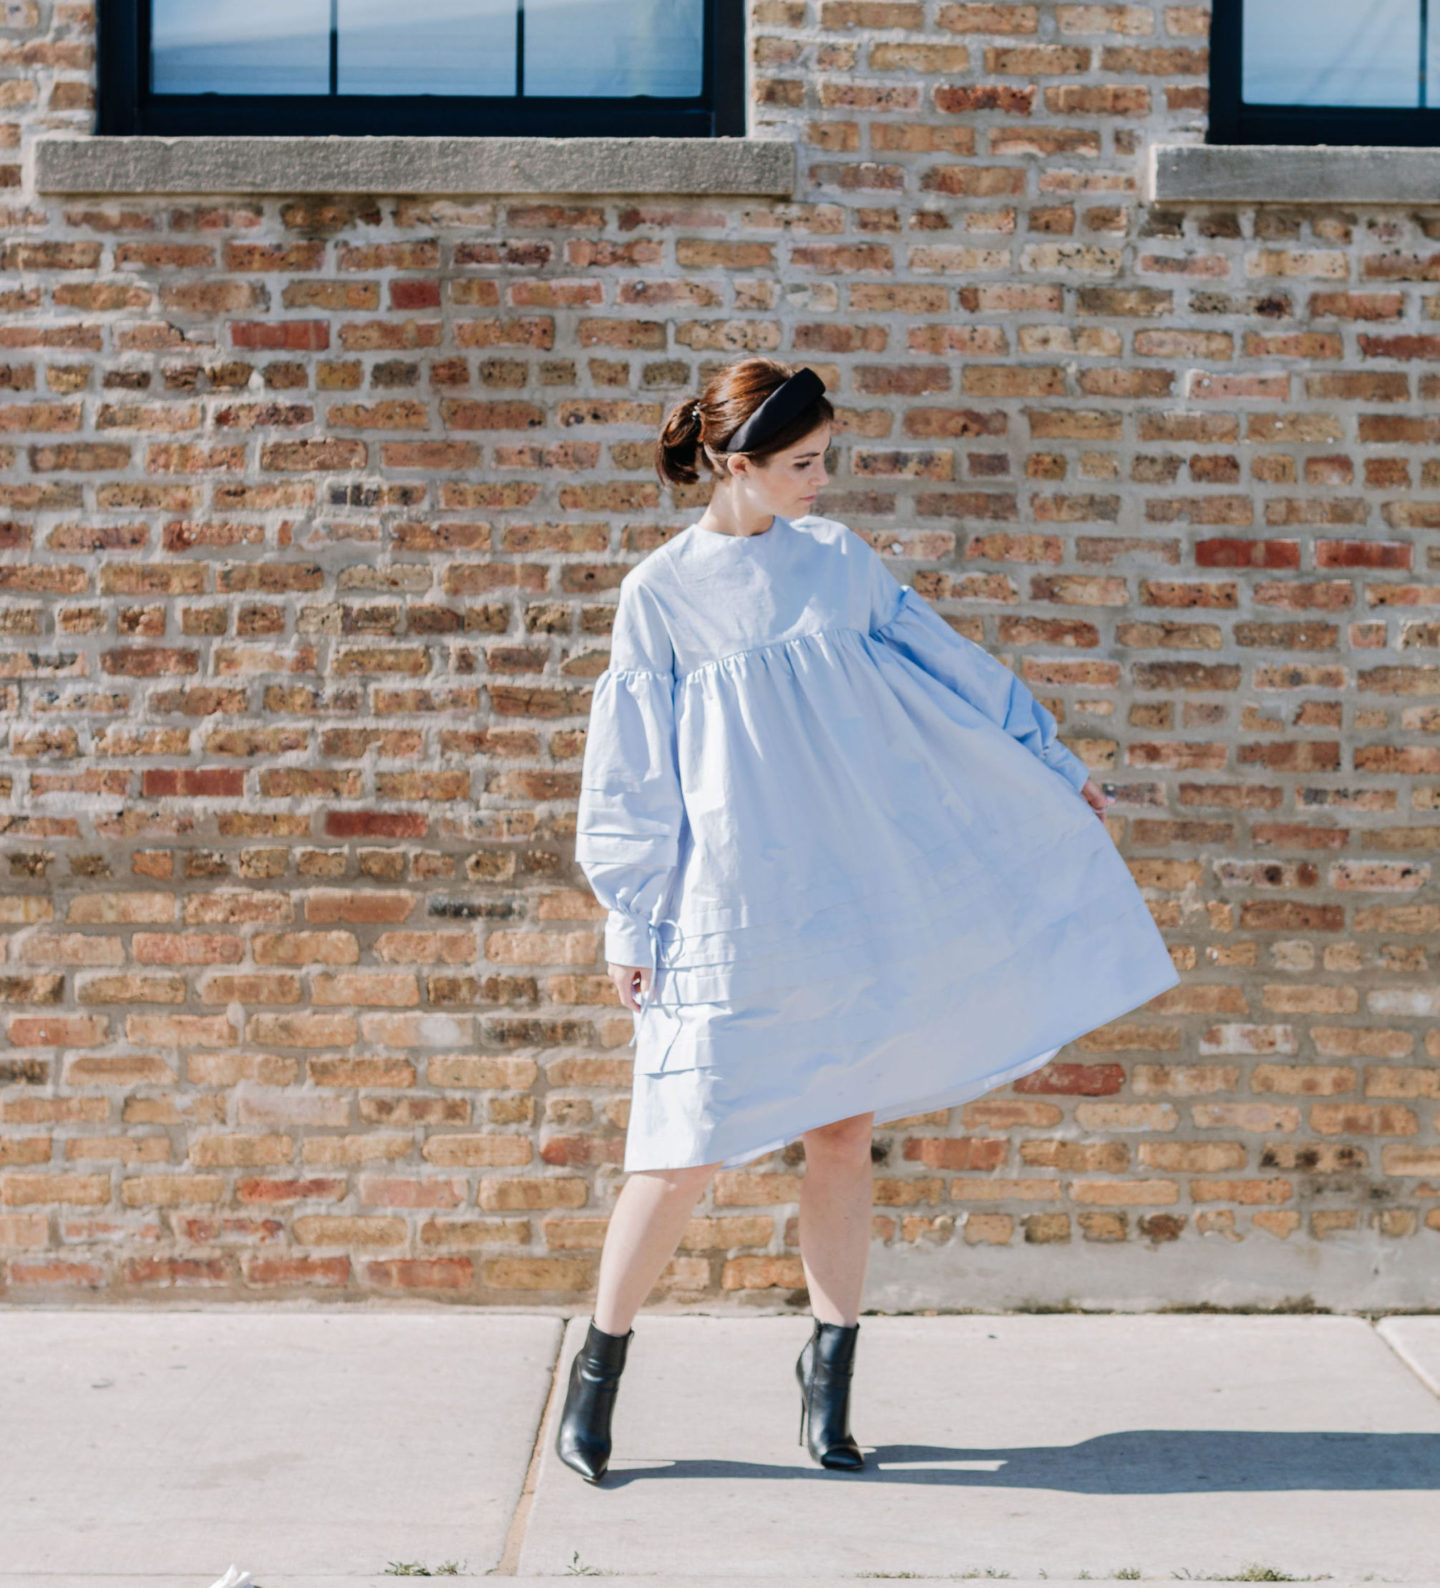 Handmade dress inspired by Cecilie Bahnsen